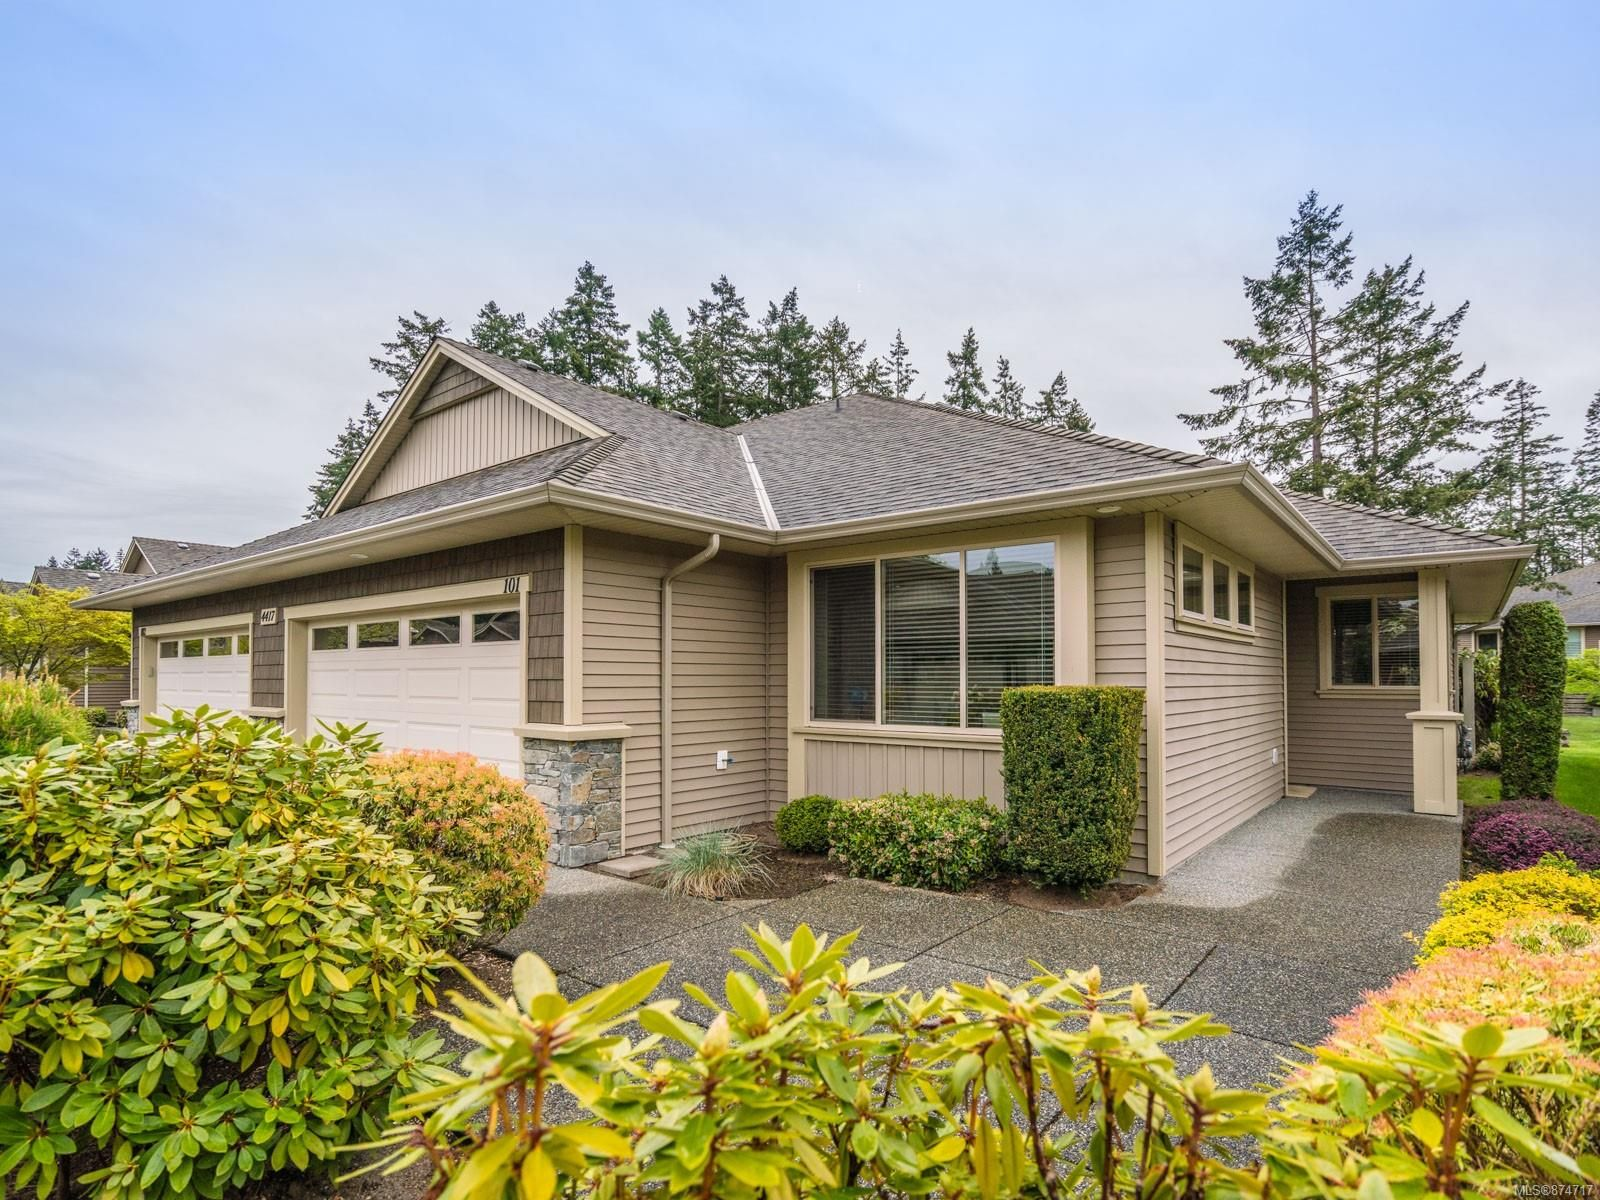 Main Photo: 101 4417 Amblewood Lane in : Na Uplands Row/Townhouse for sale (Nanaimo)  : MLS®# 874717